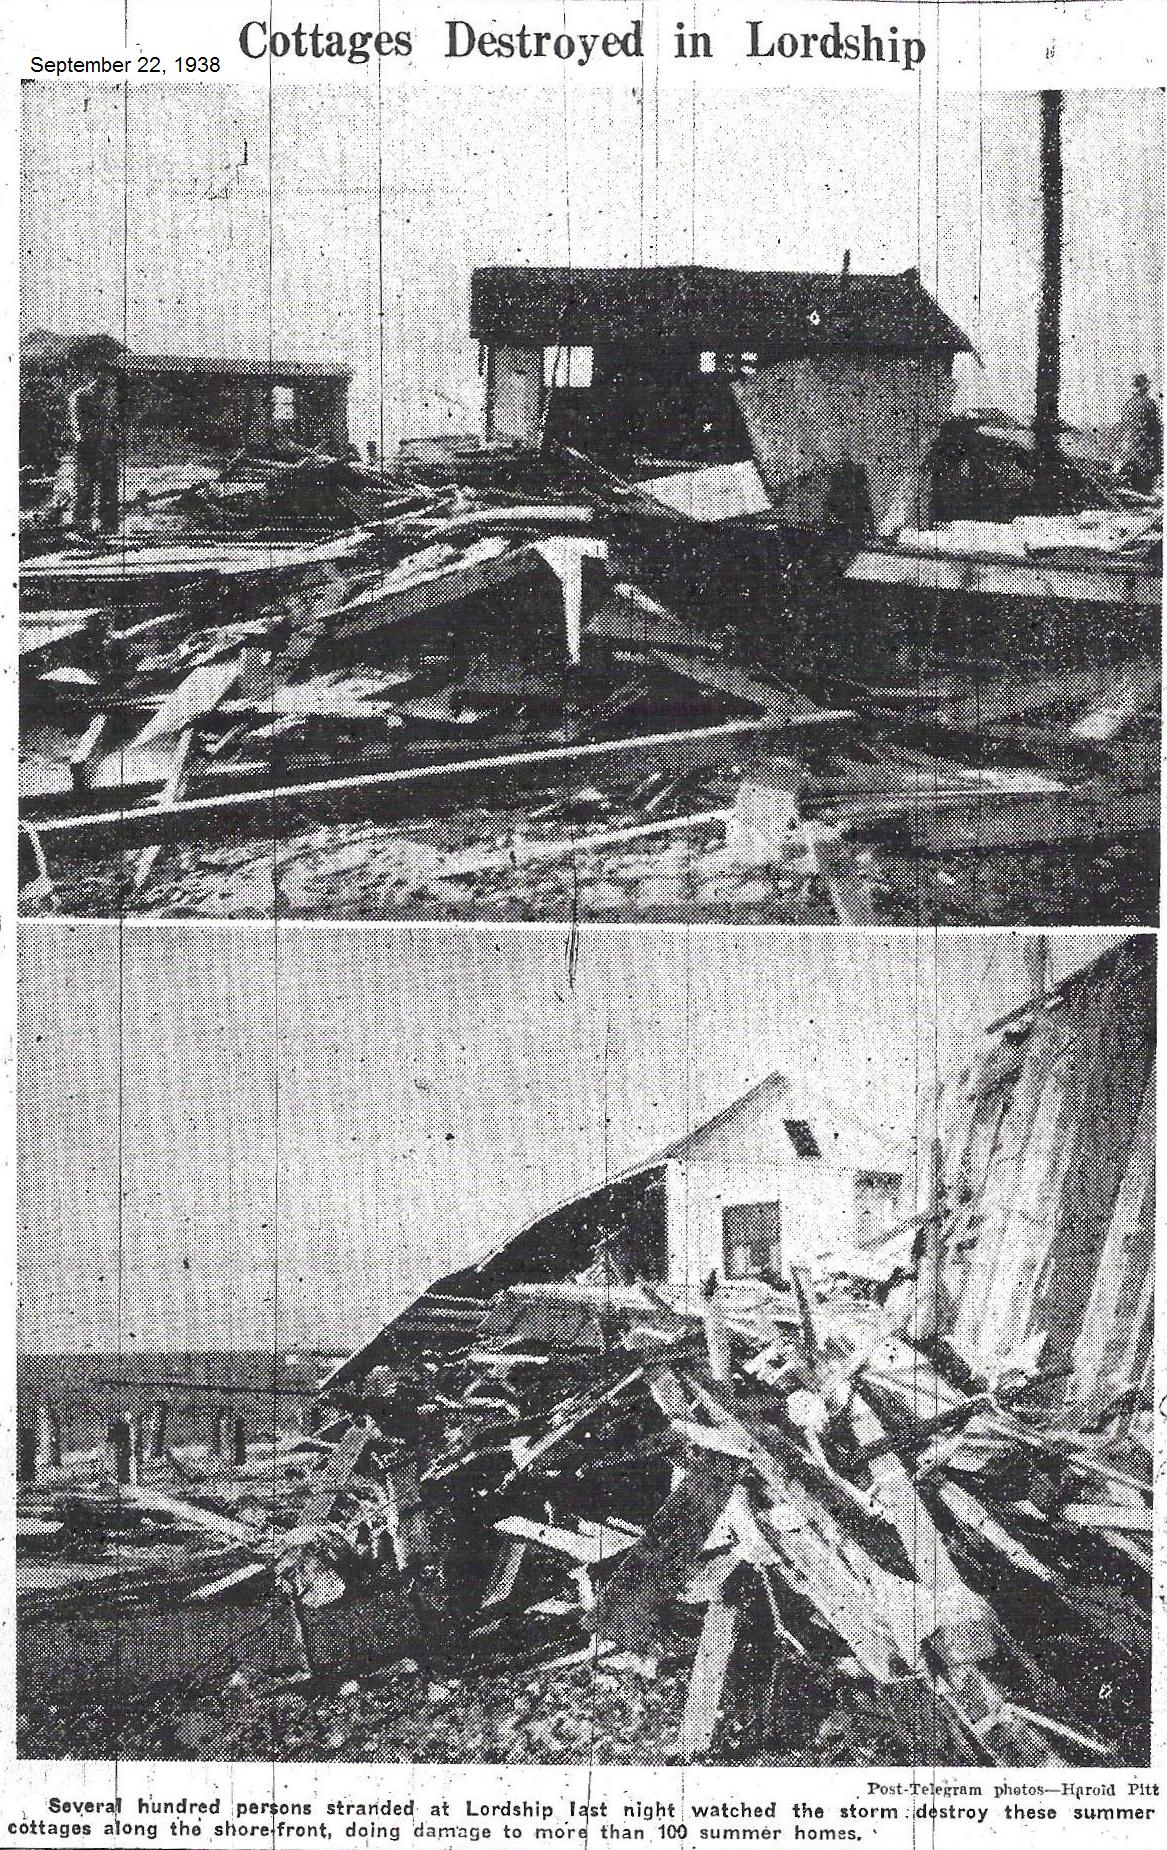 Hurricane1938damages